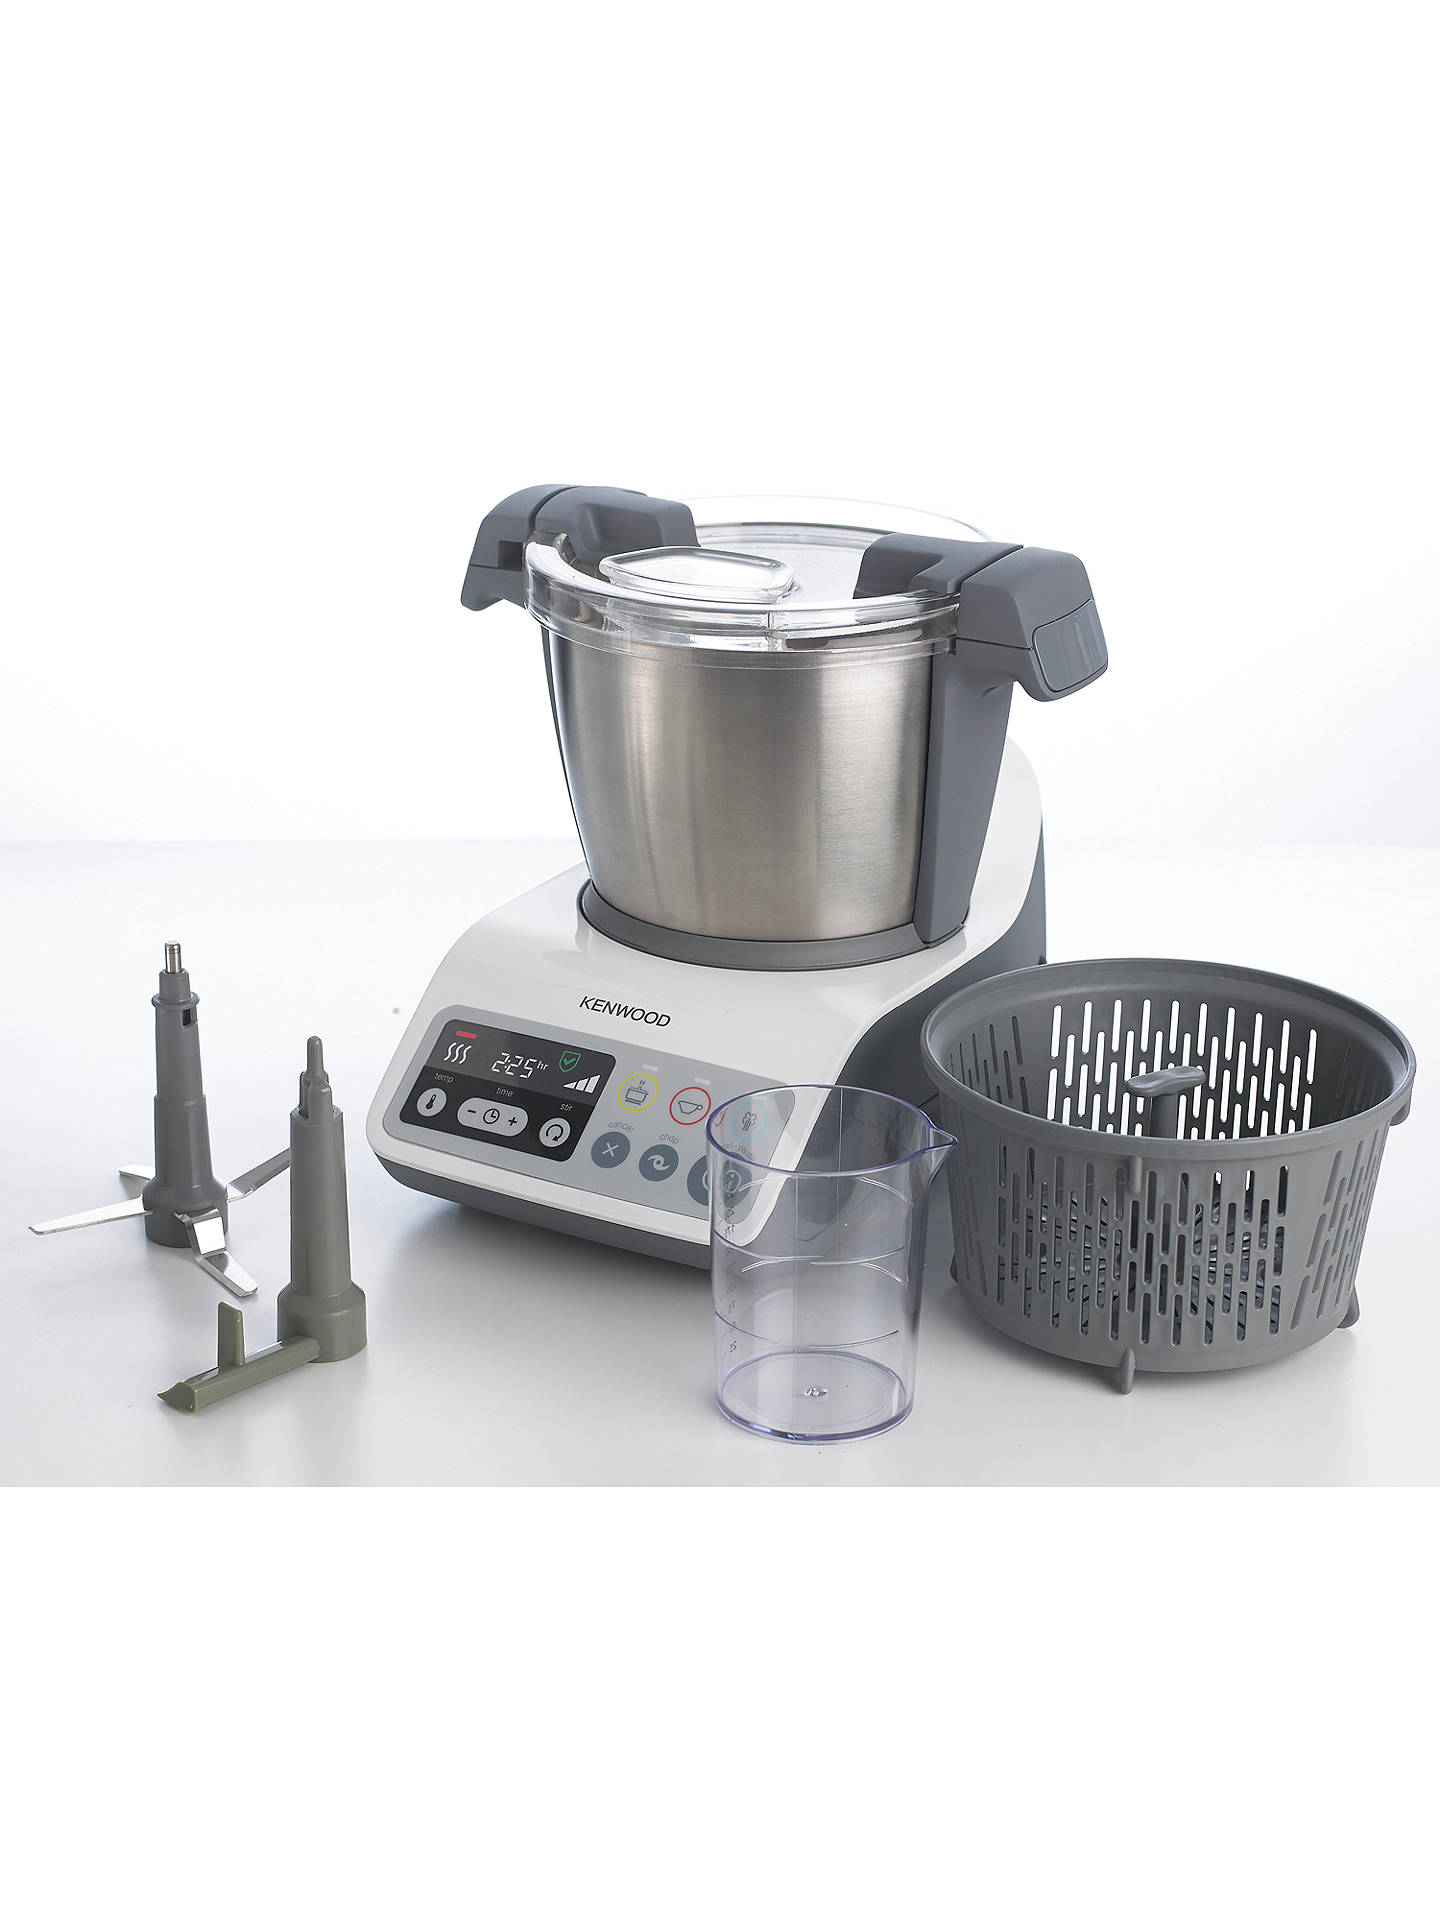 Kenwood Ccc200wh Kcook Food Processor White At John Lewis Partners